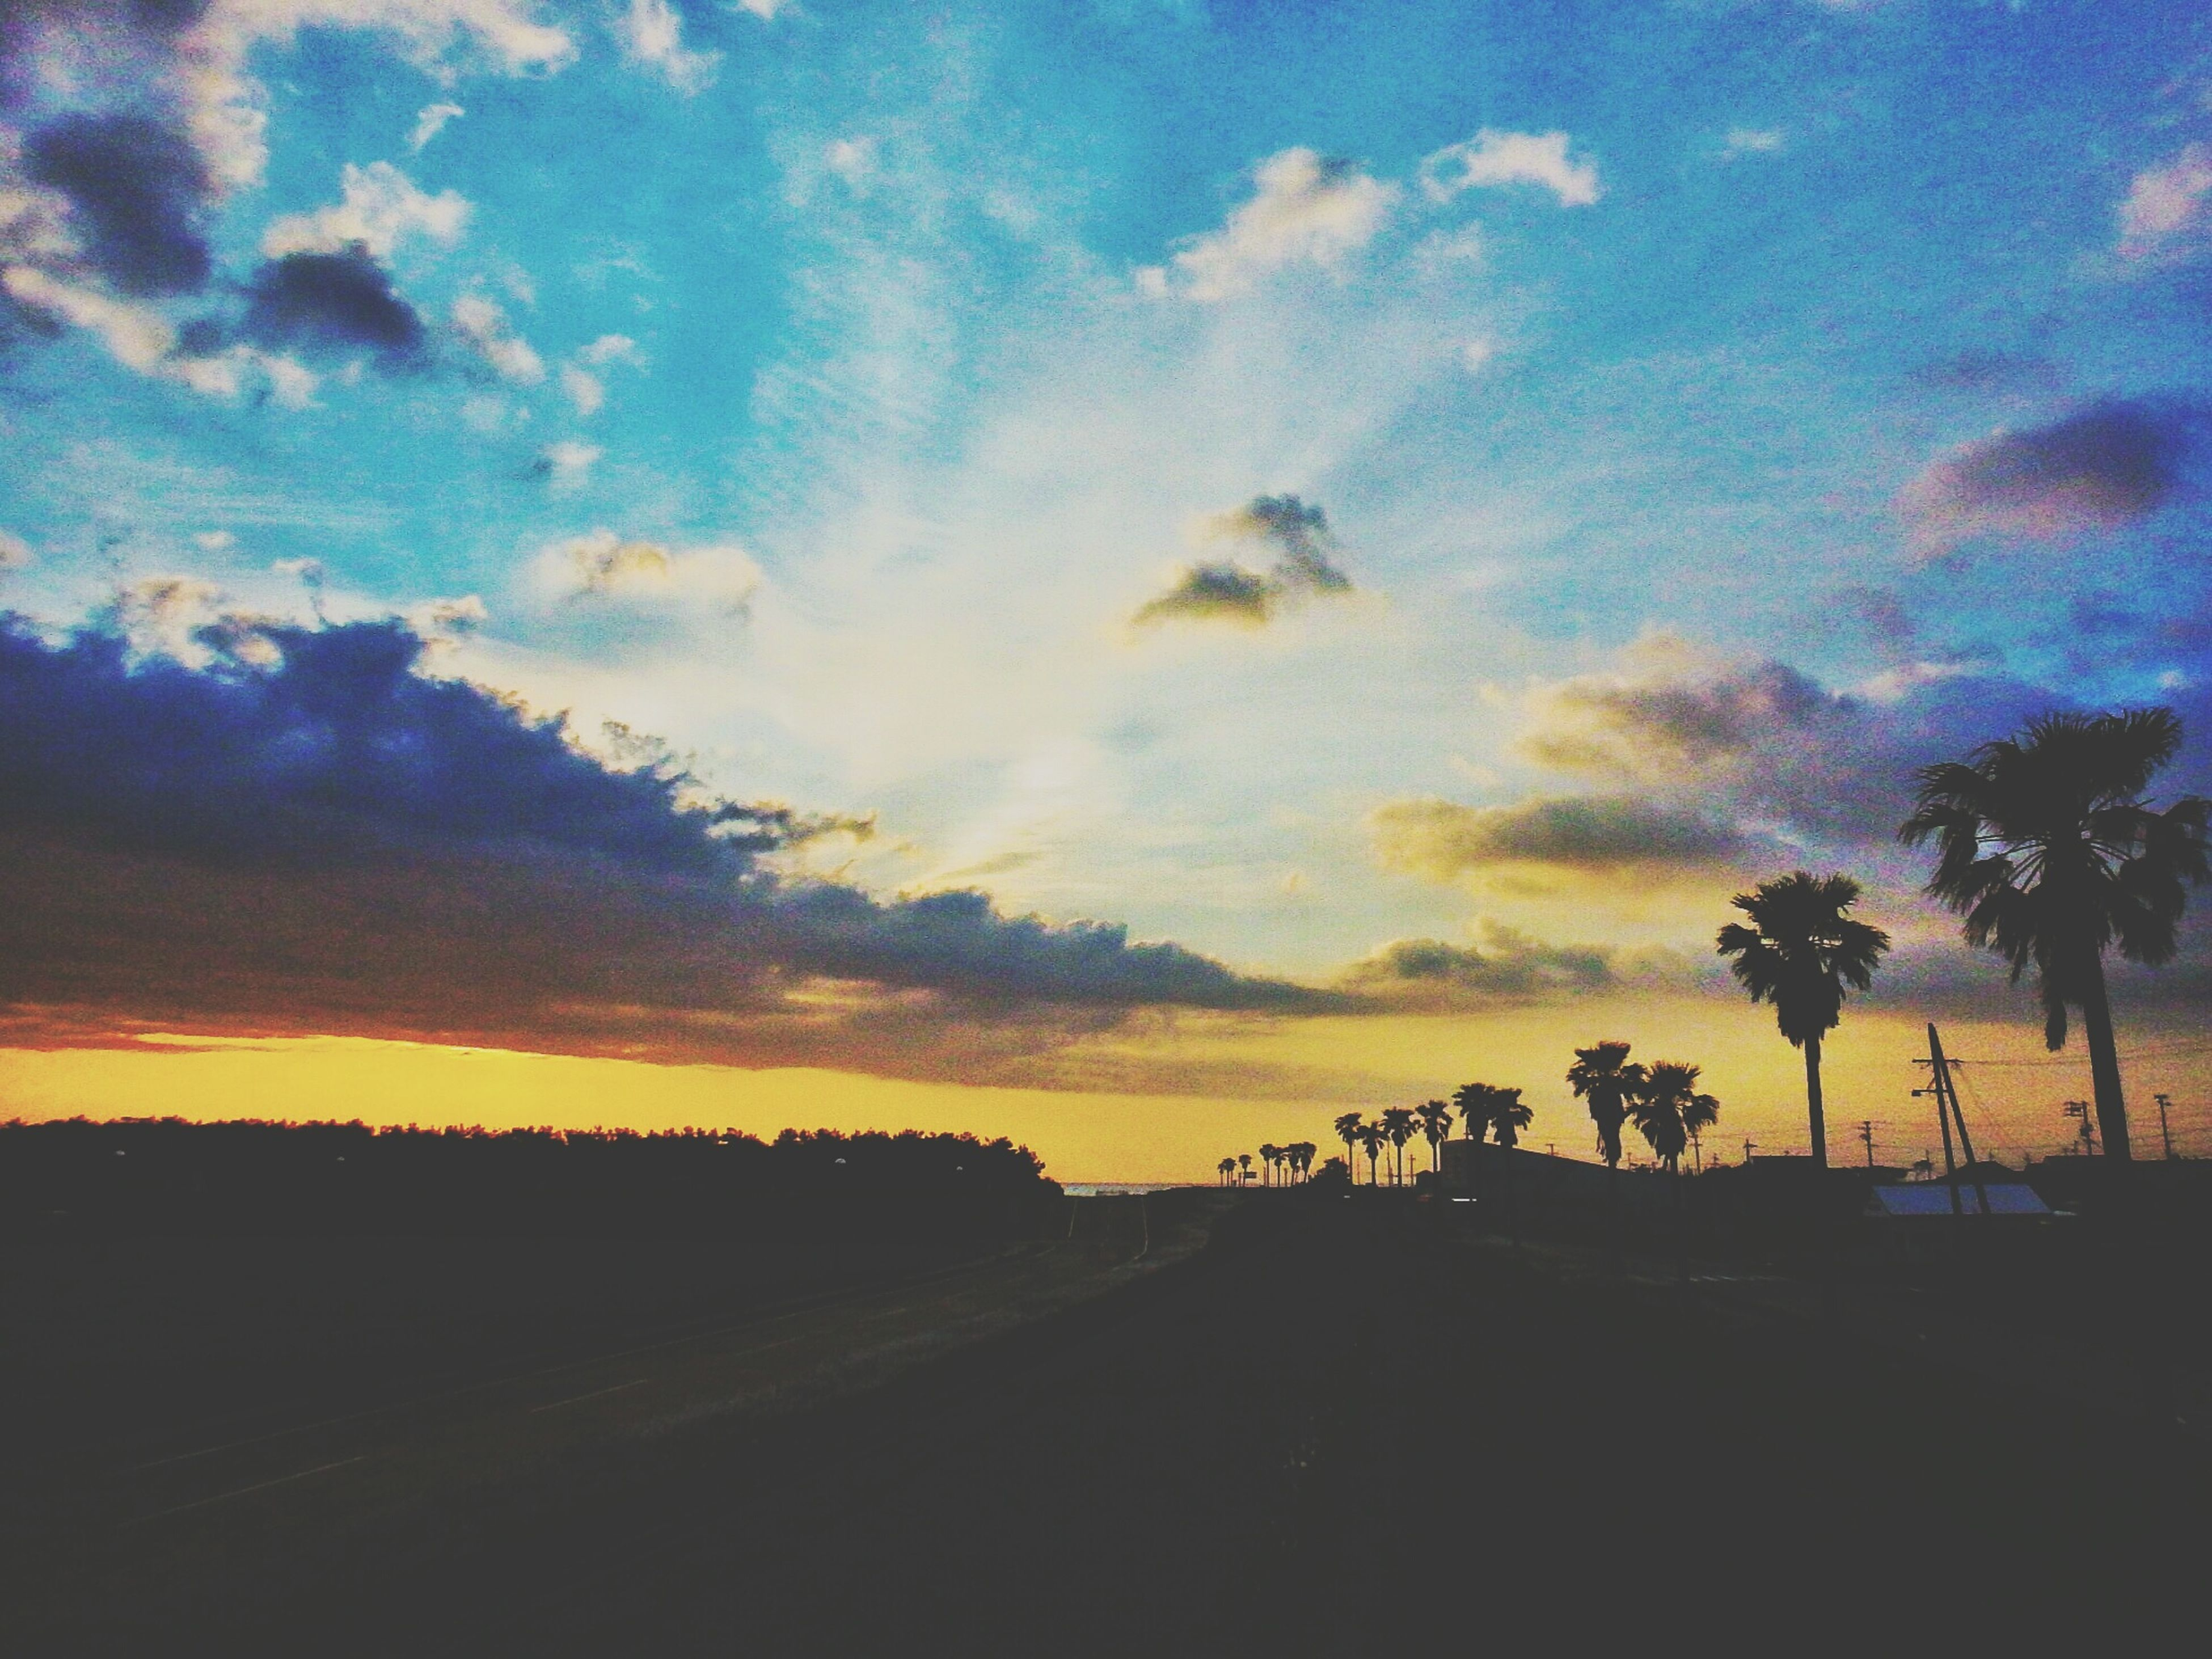 sunset, sky, silhouette, tranquil scene, tranquility, scenics, tree, beauty in nature, landscape, orange color, cloud - sky, nature, idyllic, cloud, road, outdoors, palm tree, no people, non-urban scene, field